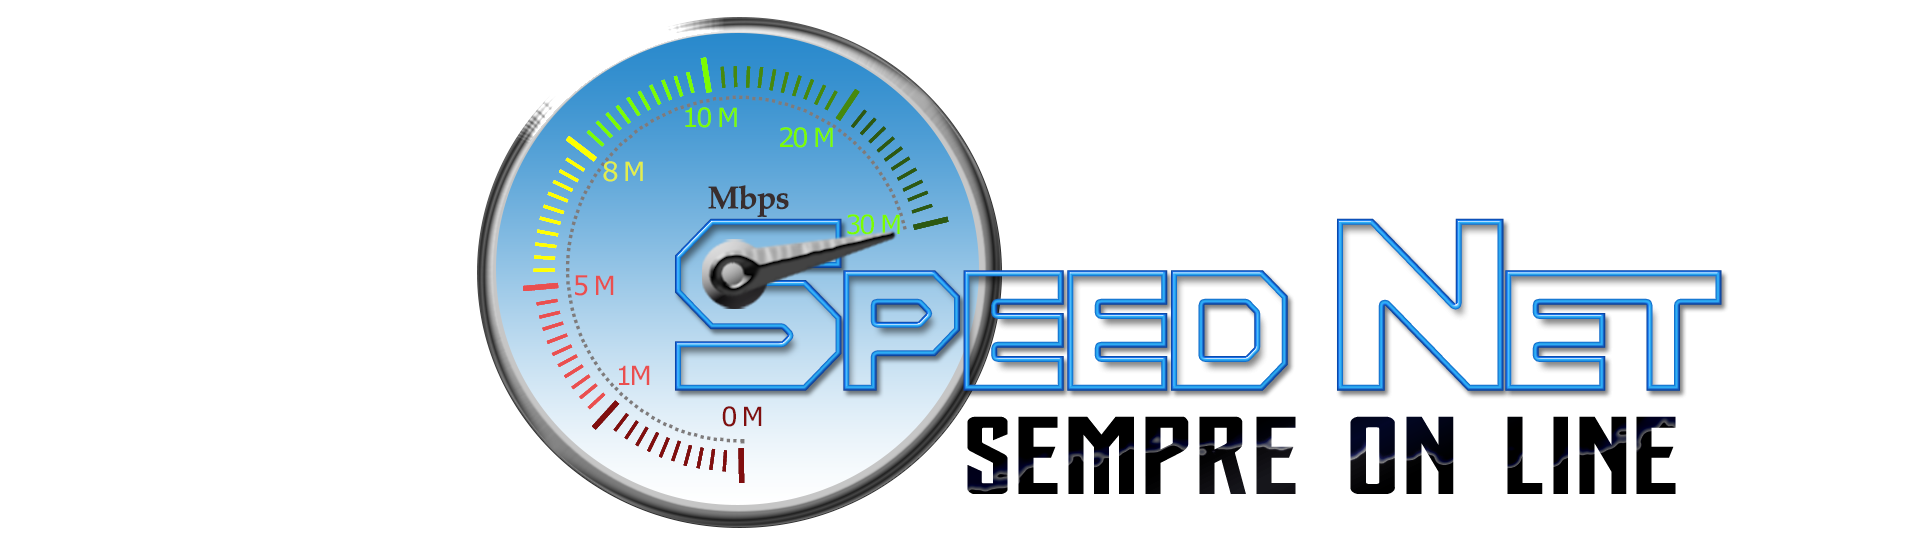 Speed Neet